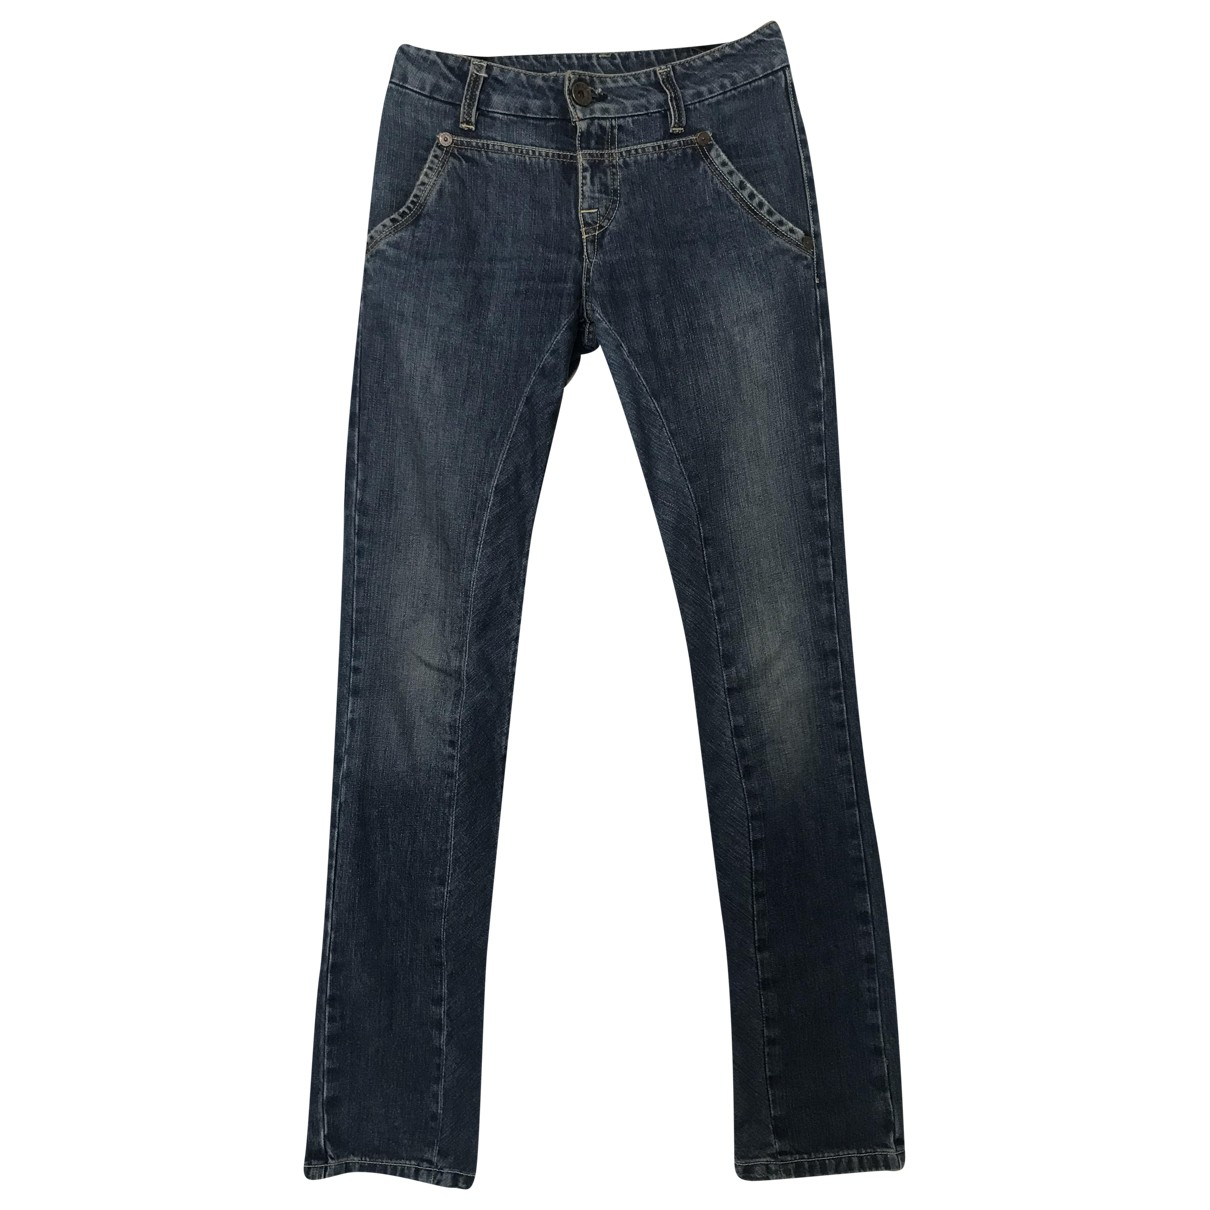 Max & Co \N Blue Denim - Jeans Jeans for Women 25 US